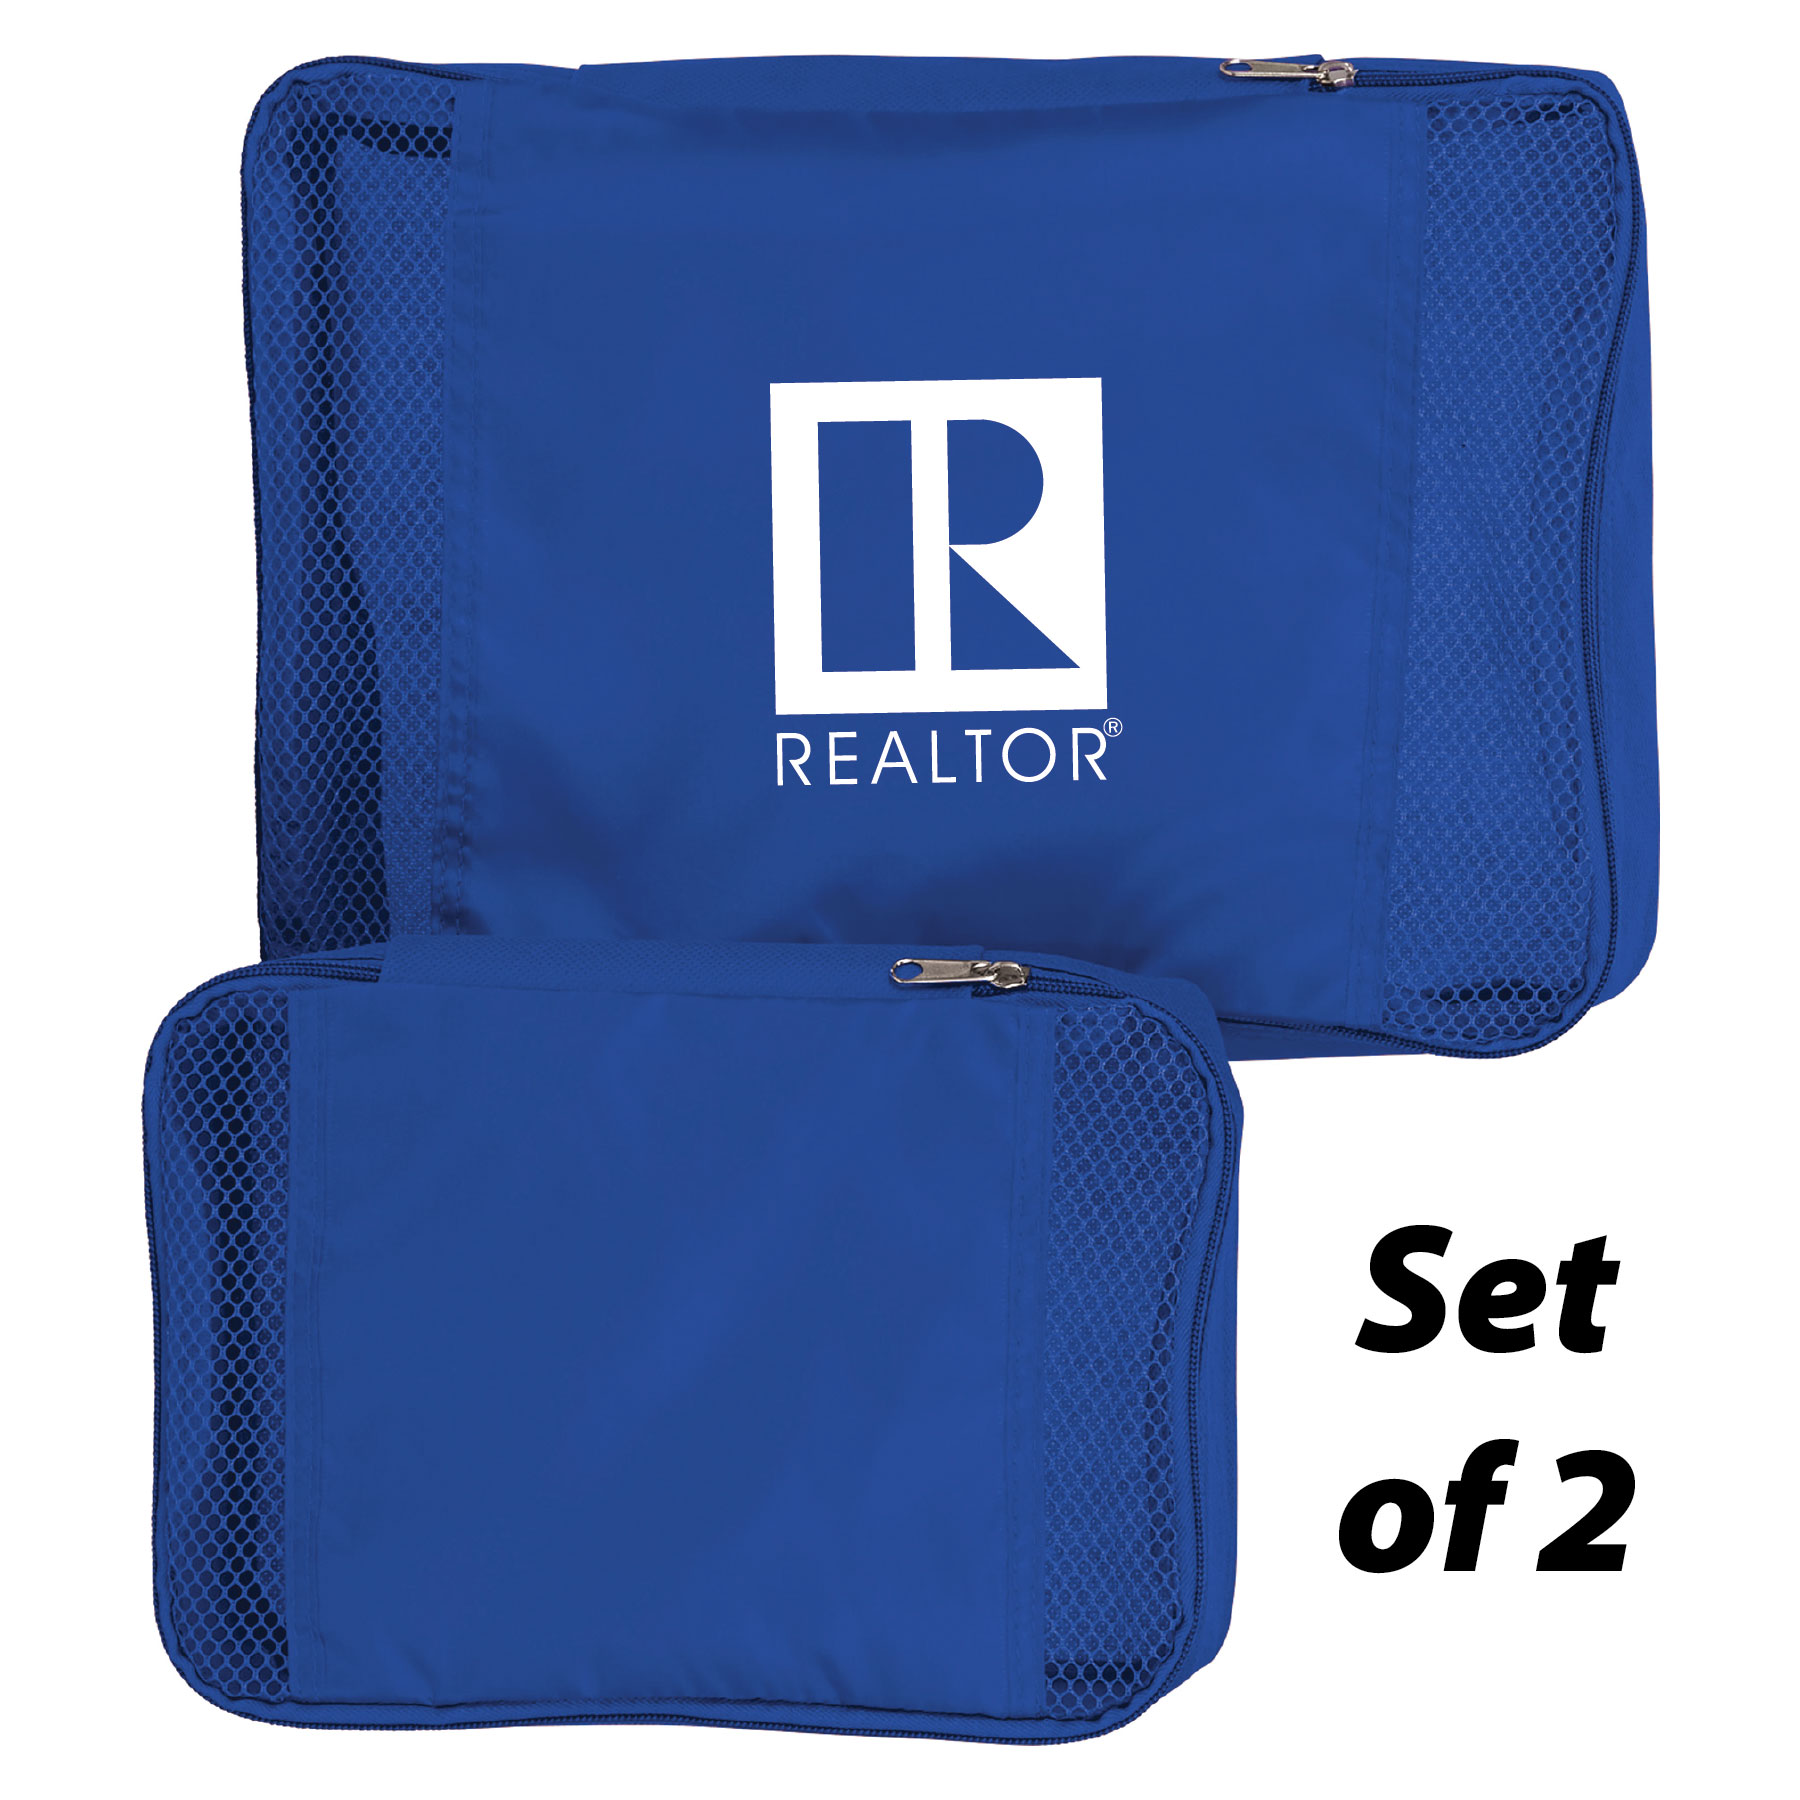 Packing Cubes (Set of 2) - RTS4663